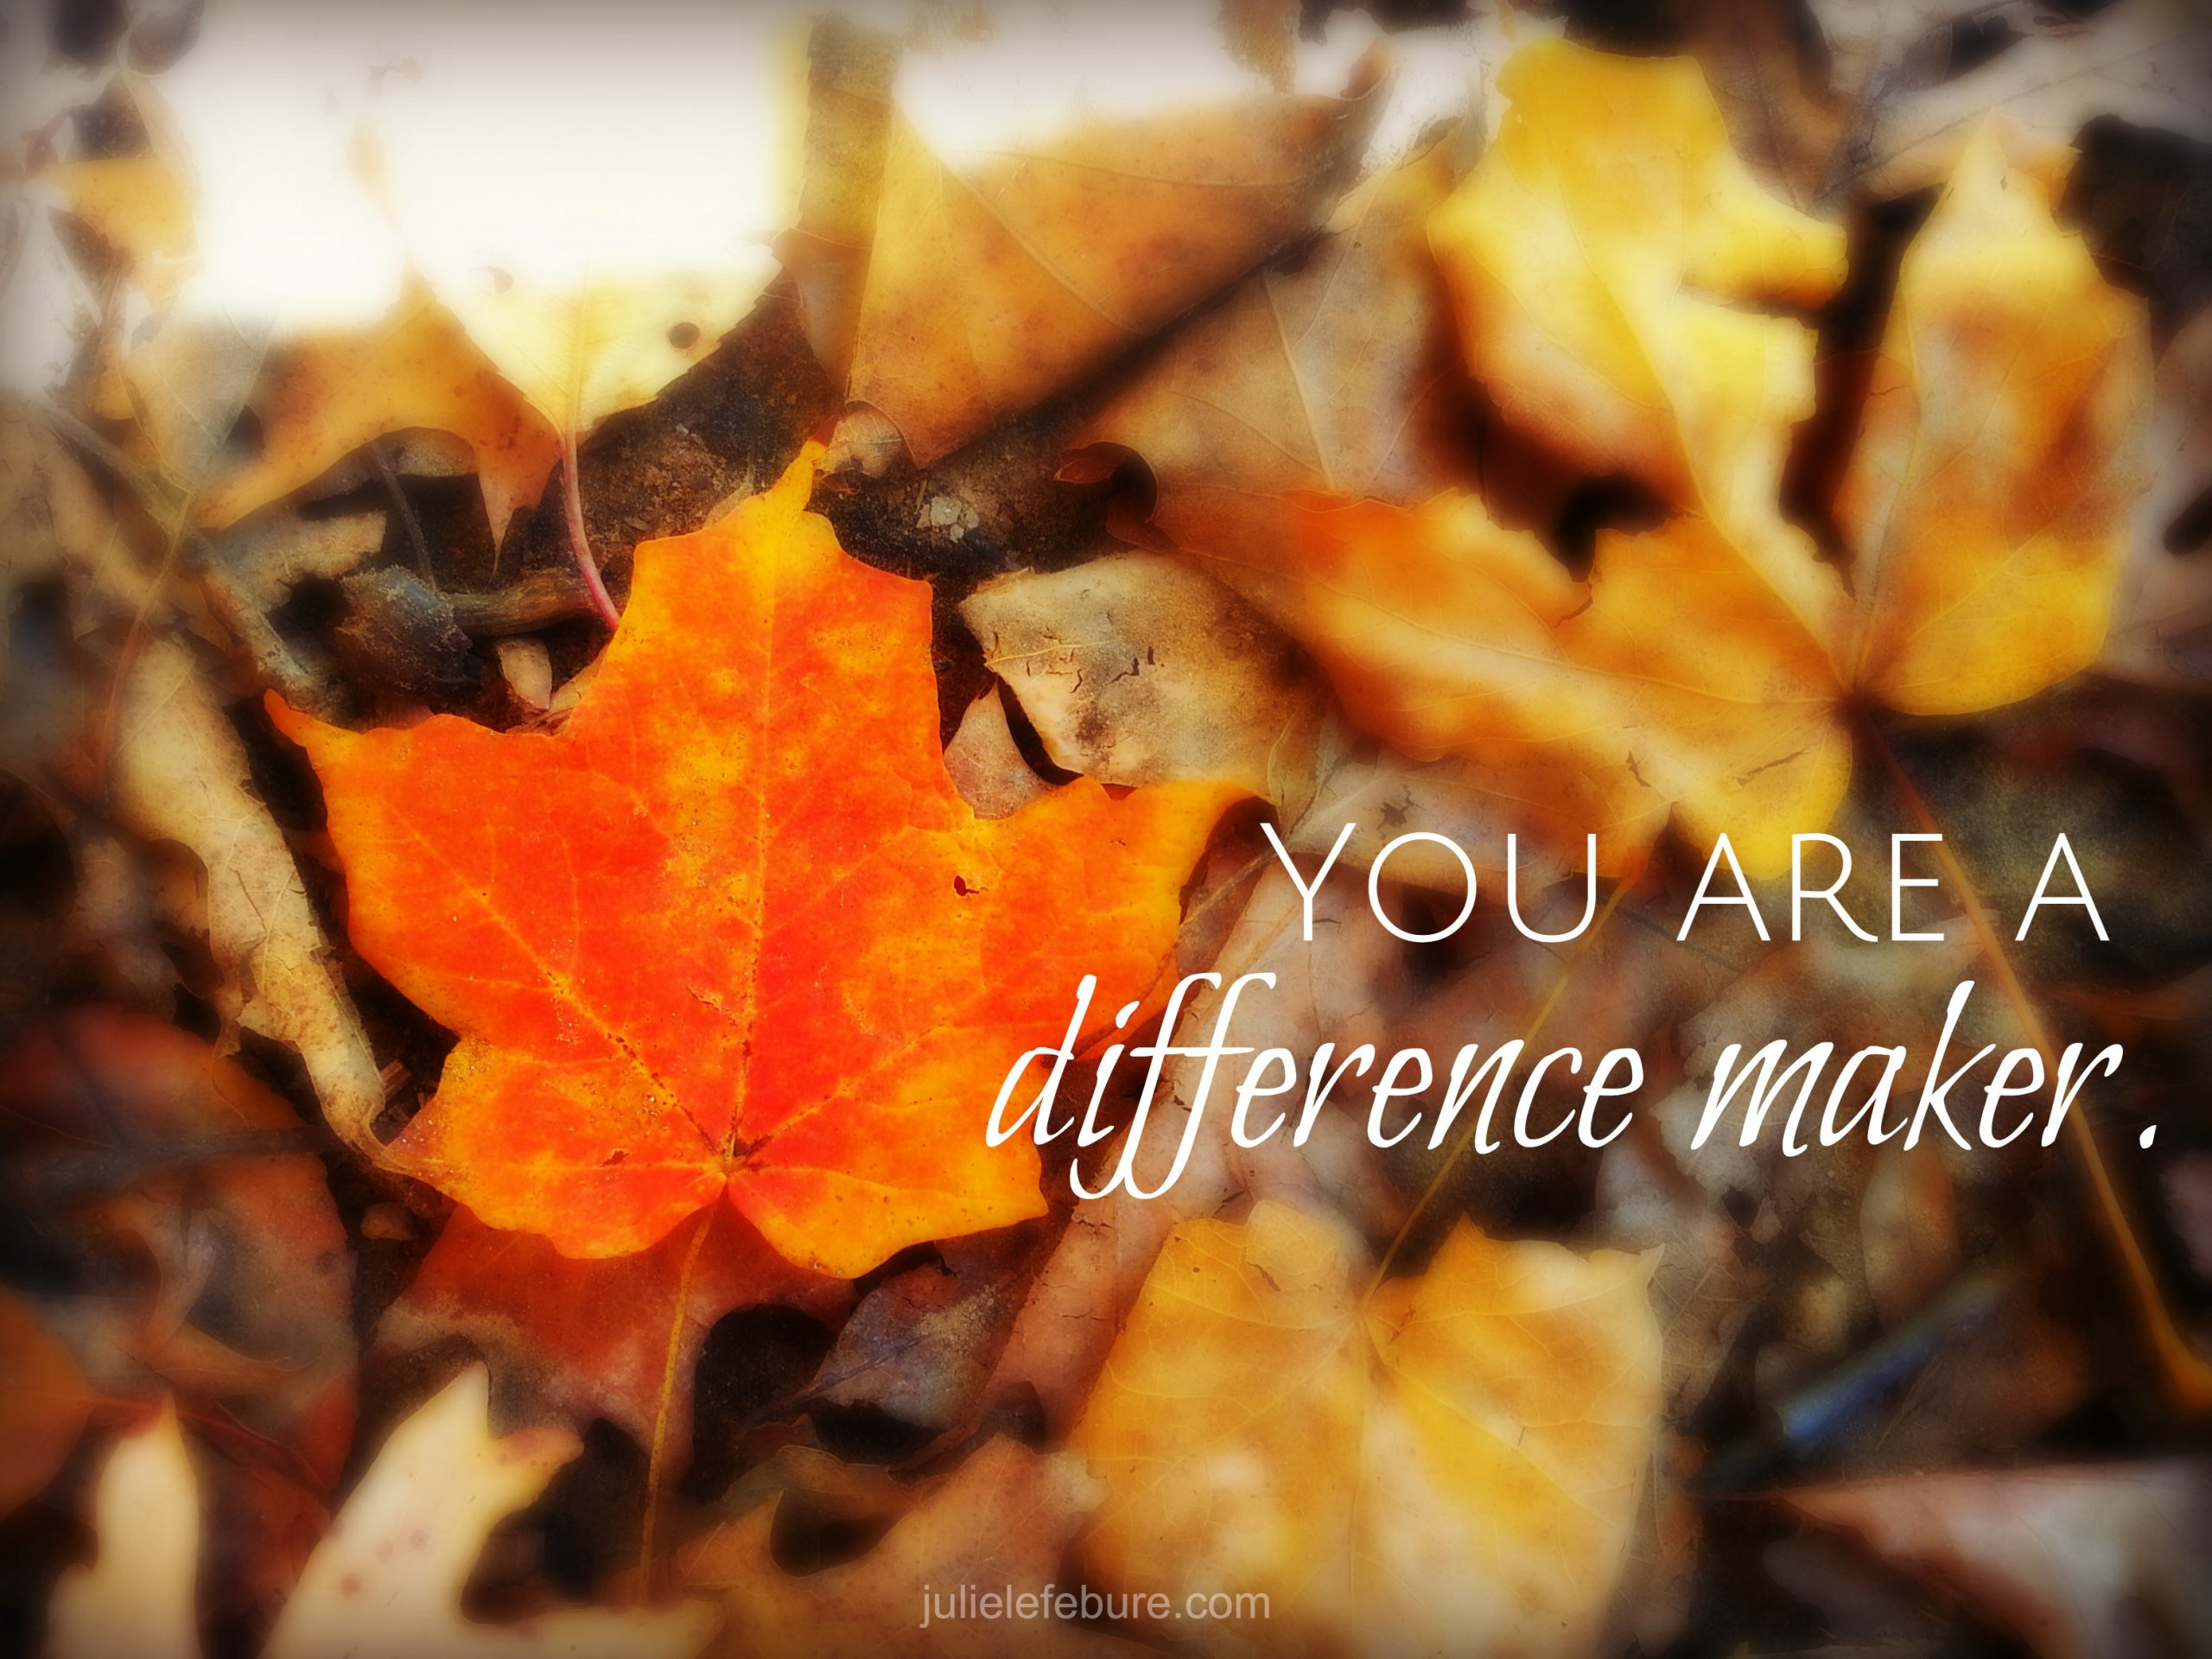 Friend, You Are A Difference Maker